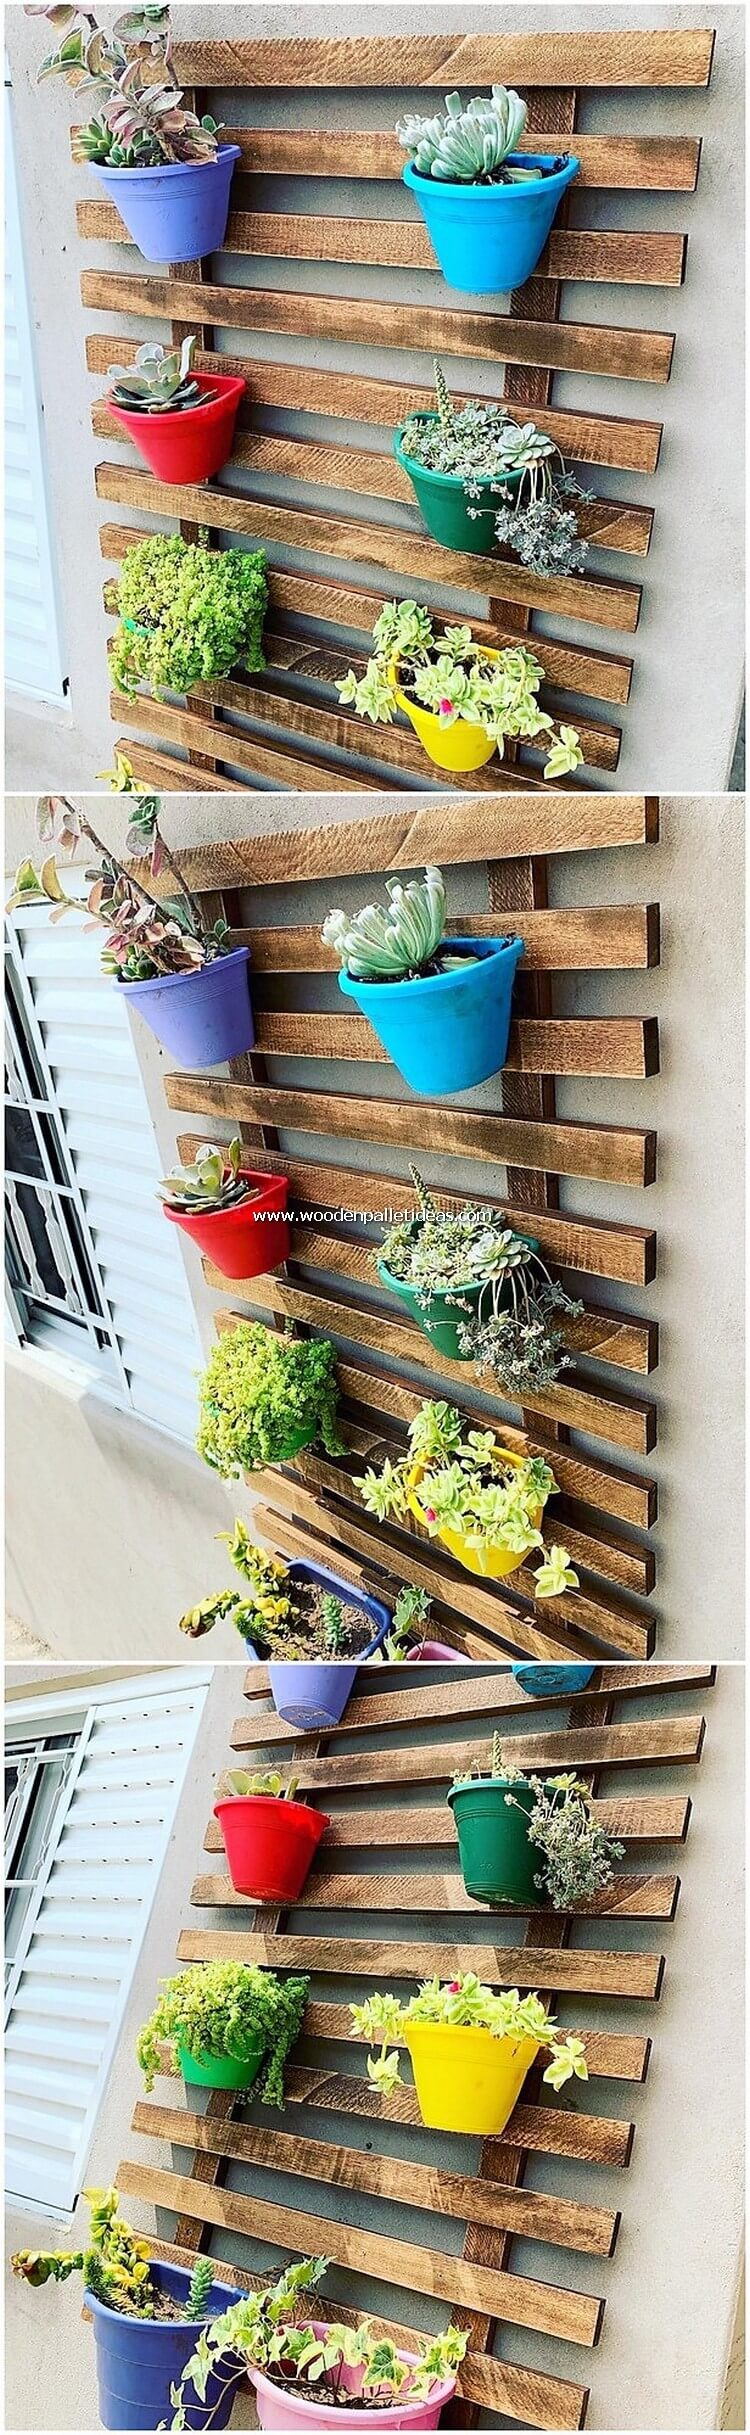 Pallet Wall Planter Pots Holder